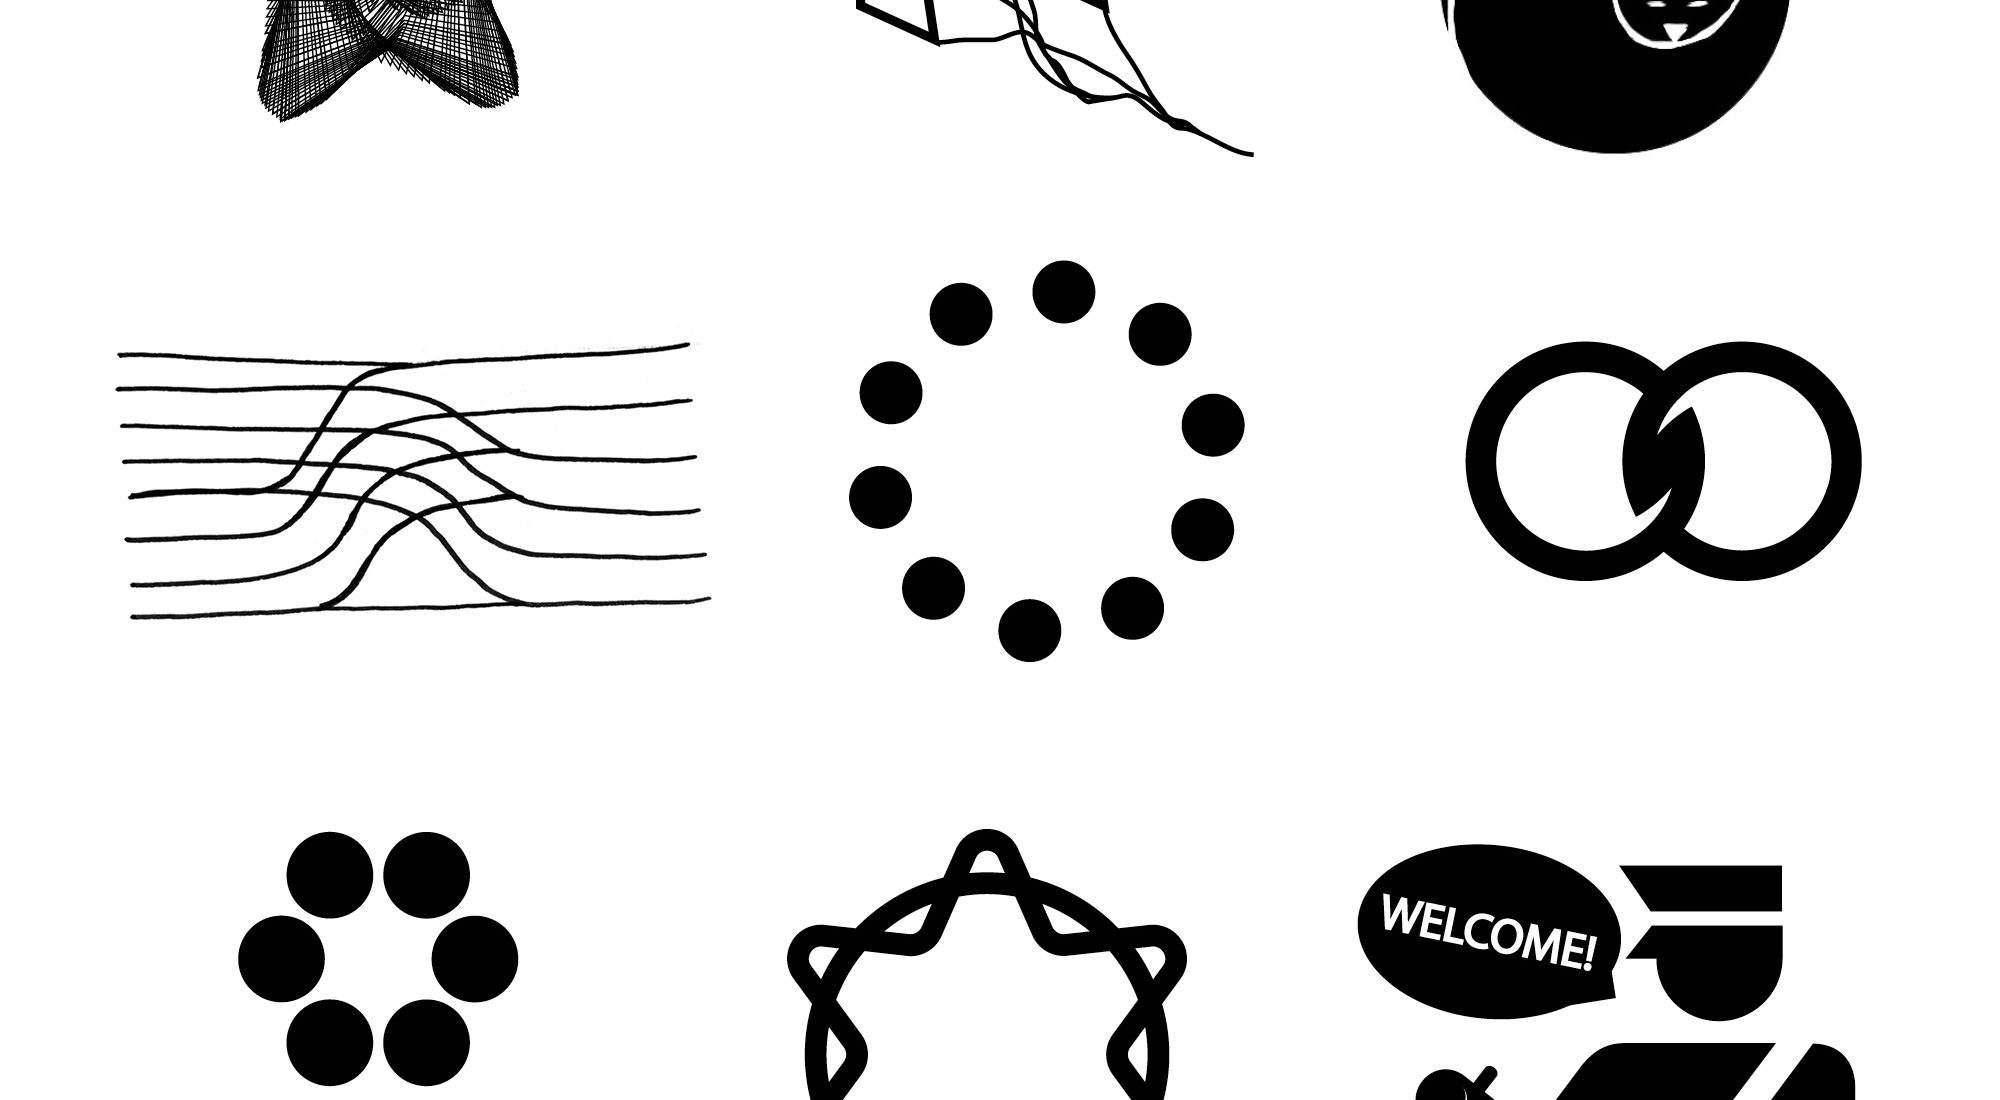 Nine black and white abstract icons created as part of the Vision Archive. Each icon is a visual representation of social movement imagery co-created by designers, artists, advocates and community organizers for a world they want to see.